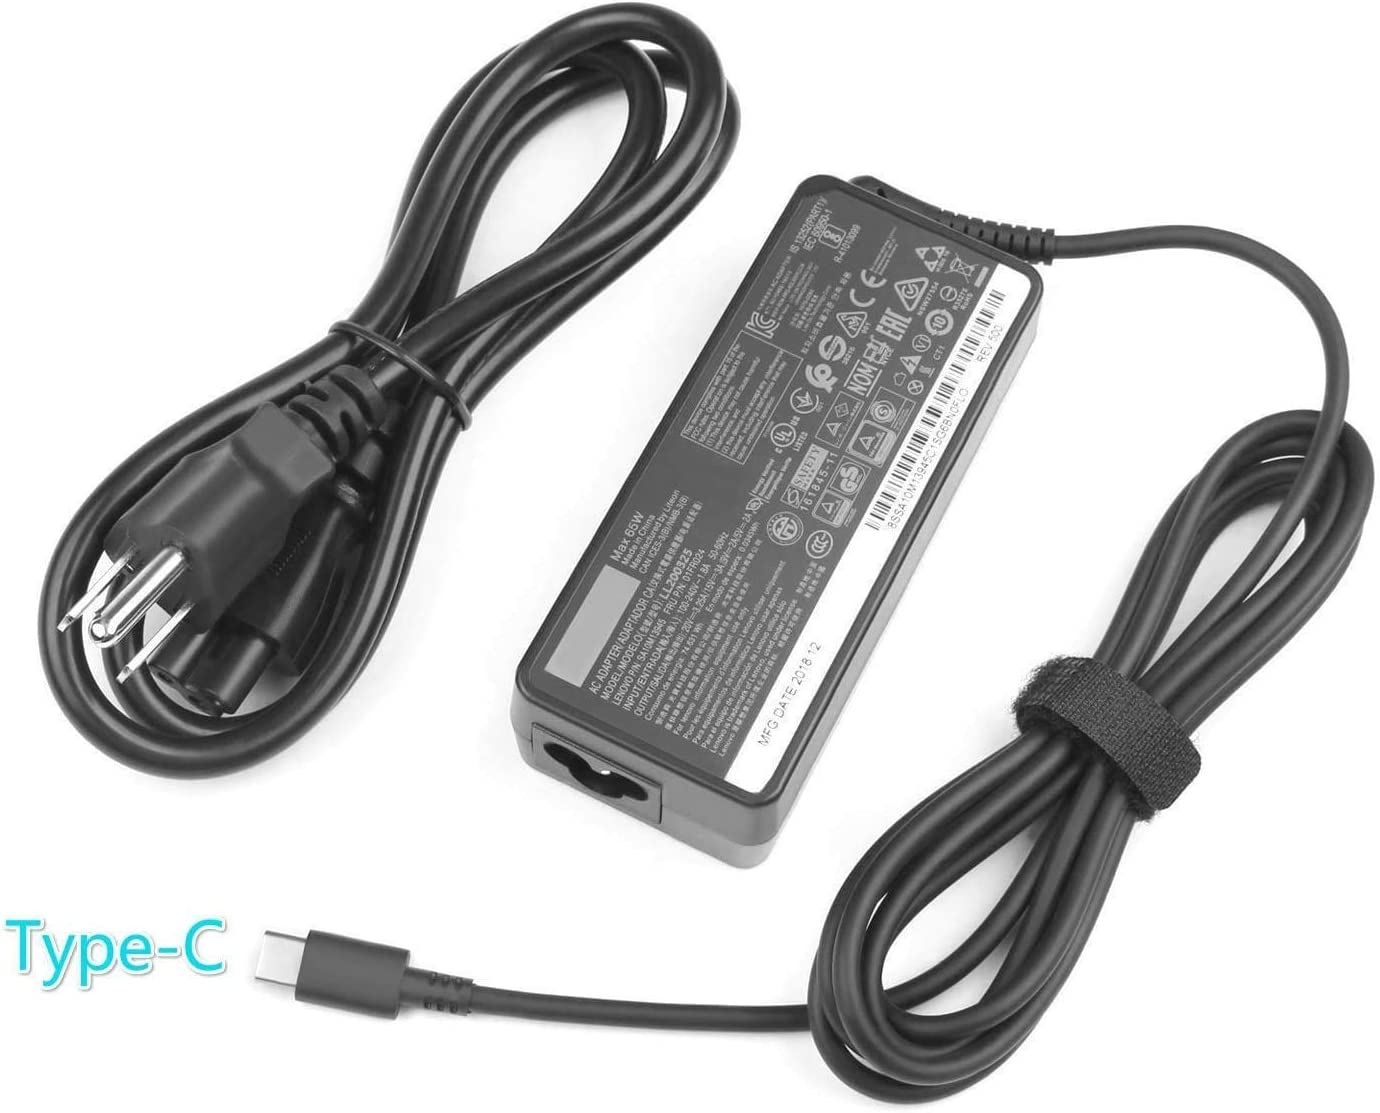 New AC Charger for Lenovo ThinkPad T480 T480S 4X20M26268 ADLX65YLC2A ADLX65YAC2A ADLX65YCC2A ADLX65YDC2A Model Laptop Power Supply Adapter Cord 65W USB C …